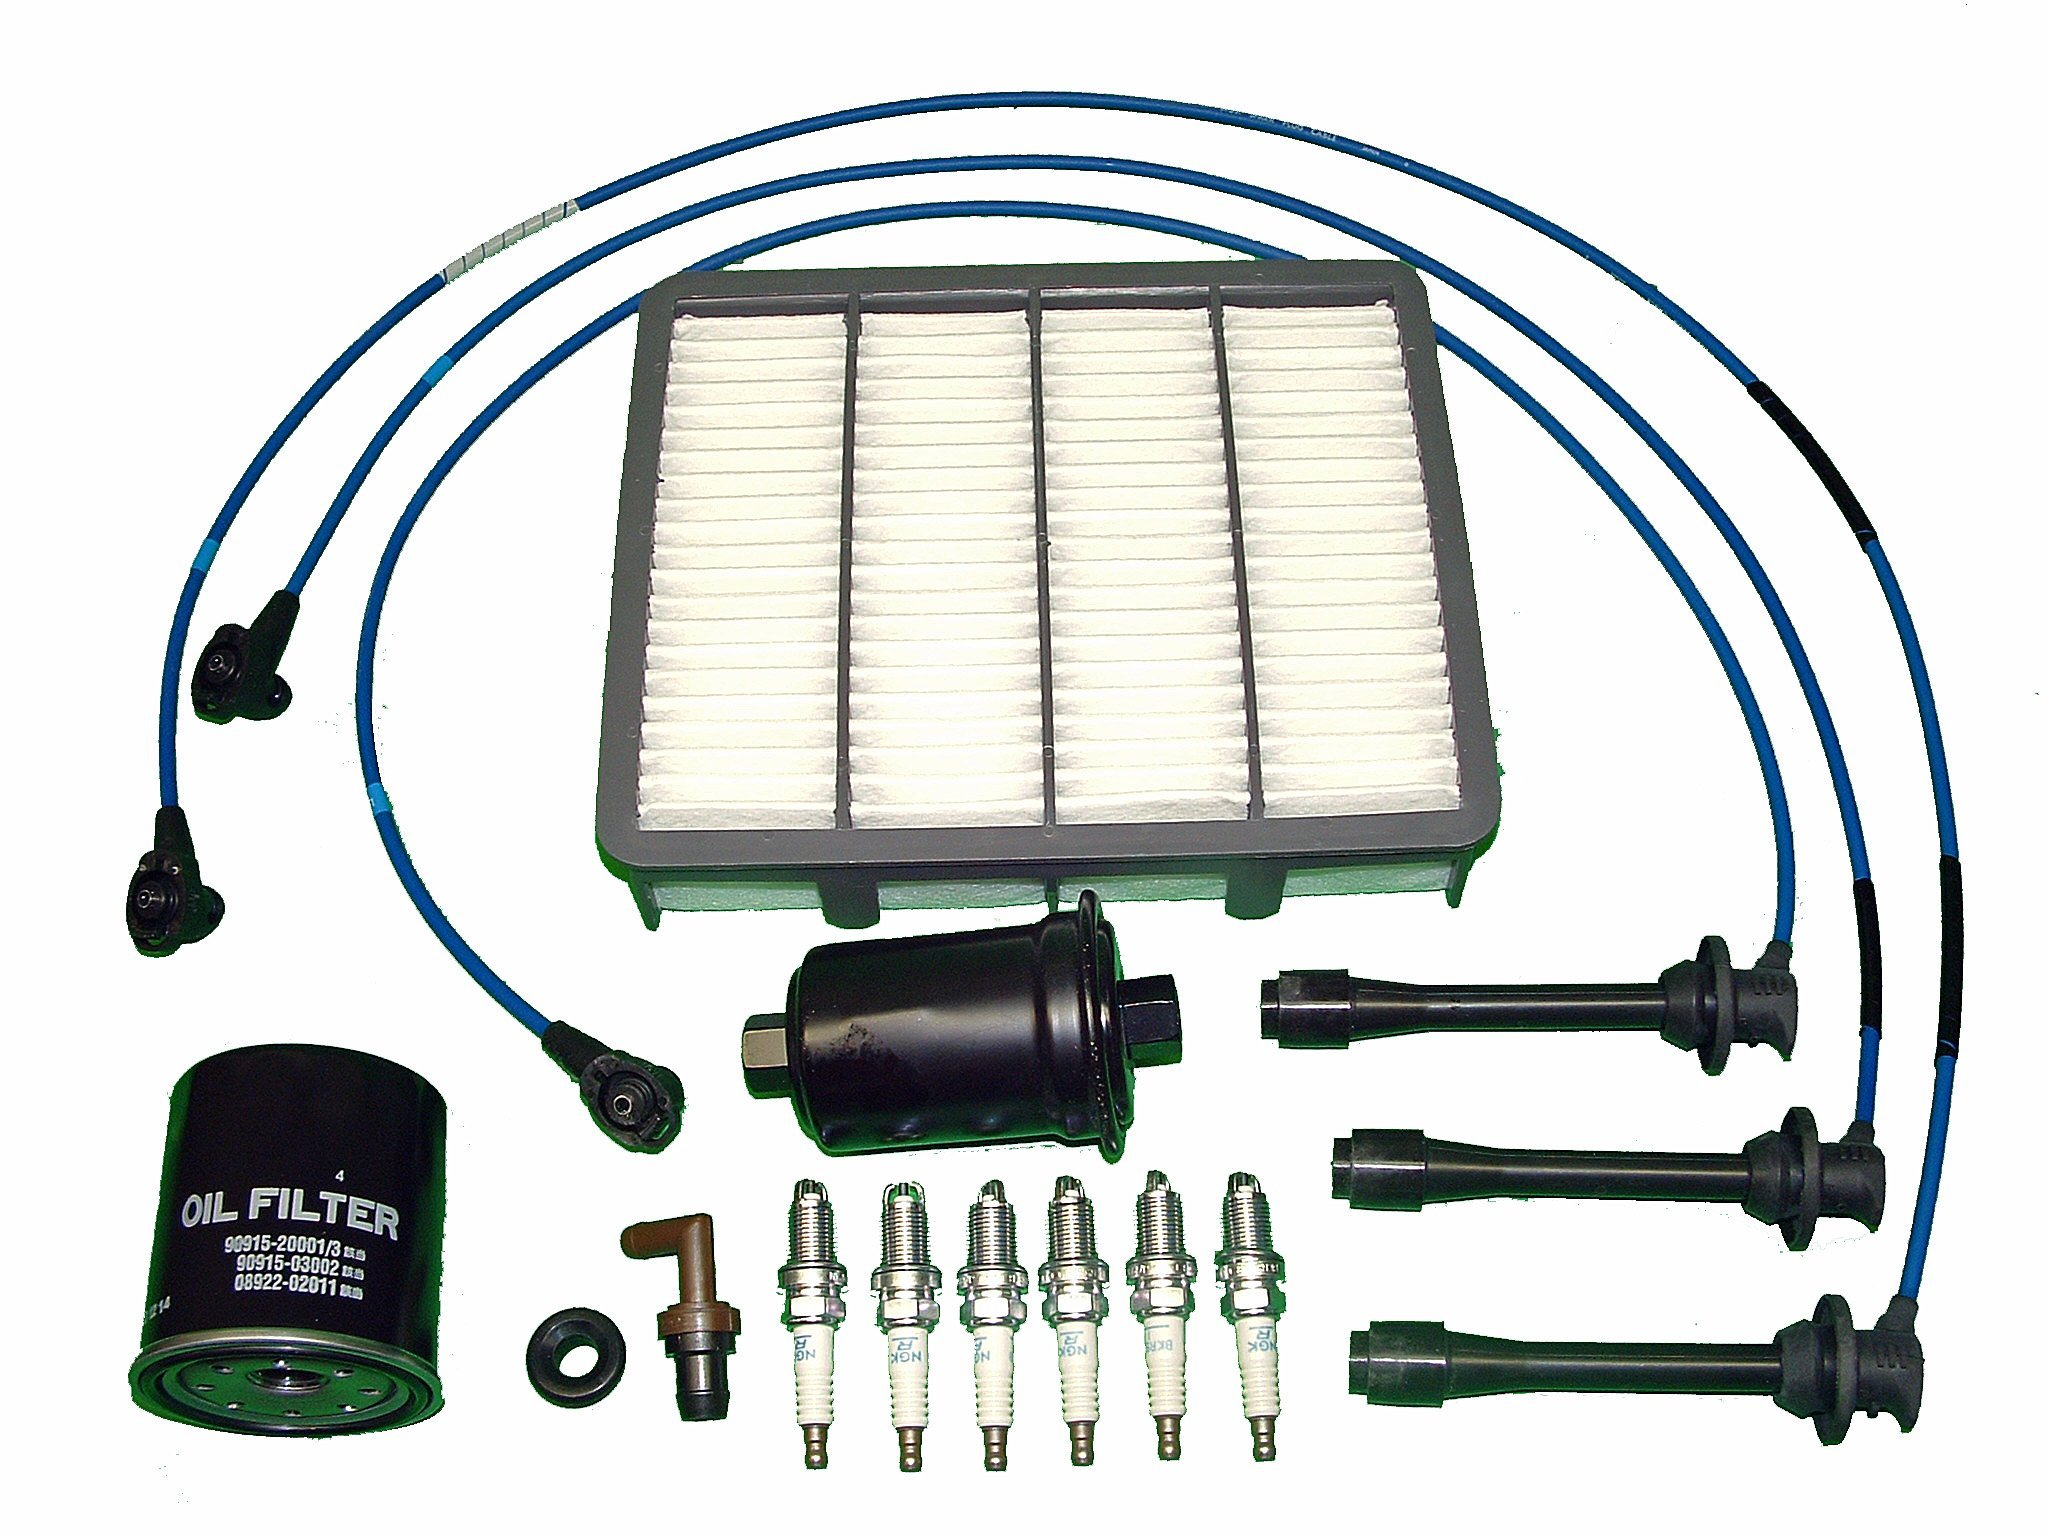 TBK Engine Tune Up Parts Kit Replacement for Toyota Tacoma 1996-2004 3.4 Toyota 4runner 1996-2002 Includes all filters, PCV valve and grommet NGK spark plugs and NGK Ignition Wires by TBK Timing Belt Kit